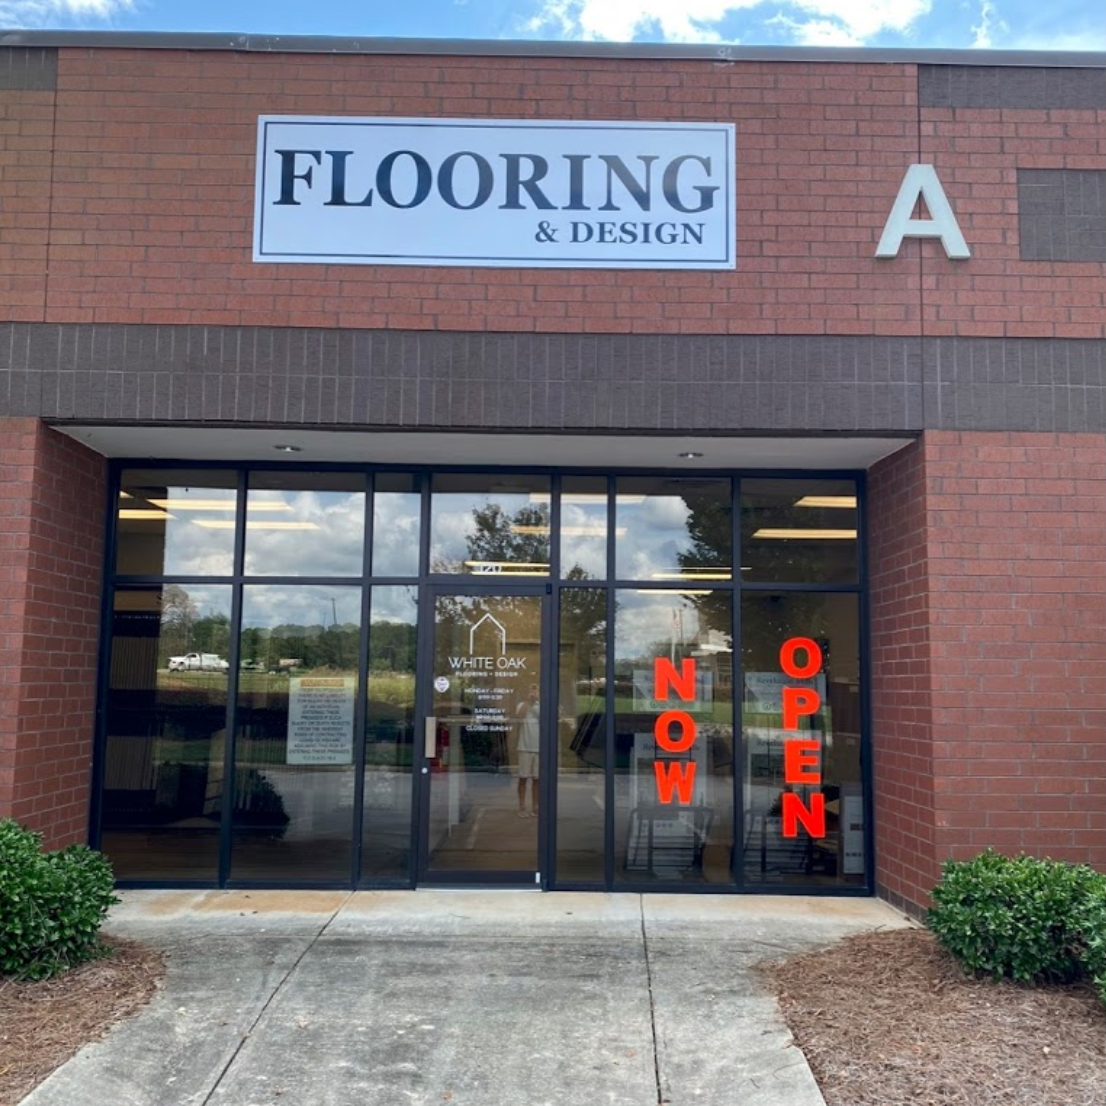 White Oak Flooring & Design, Inc - 11335 Lewis Braselton Blvd Building A, Braselton, GA 30517